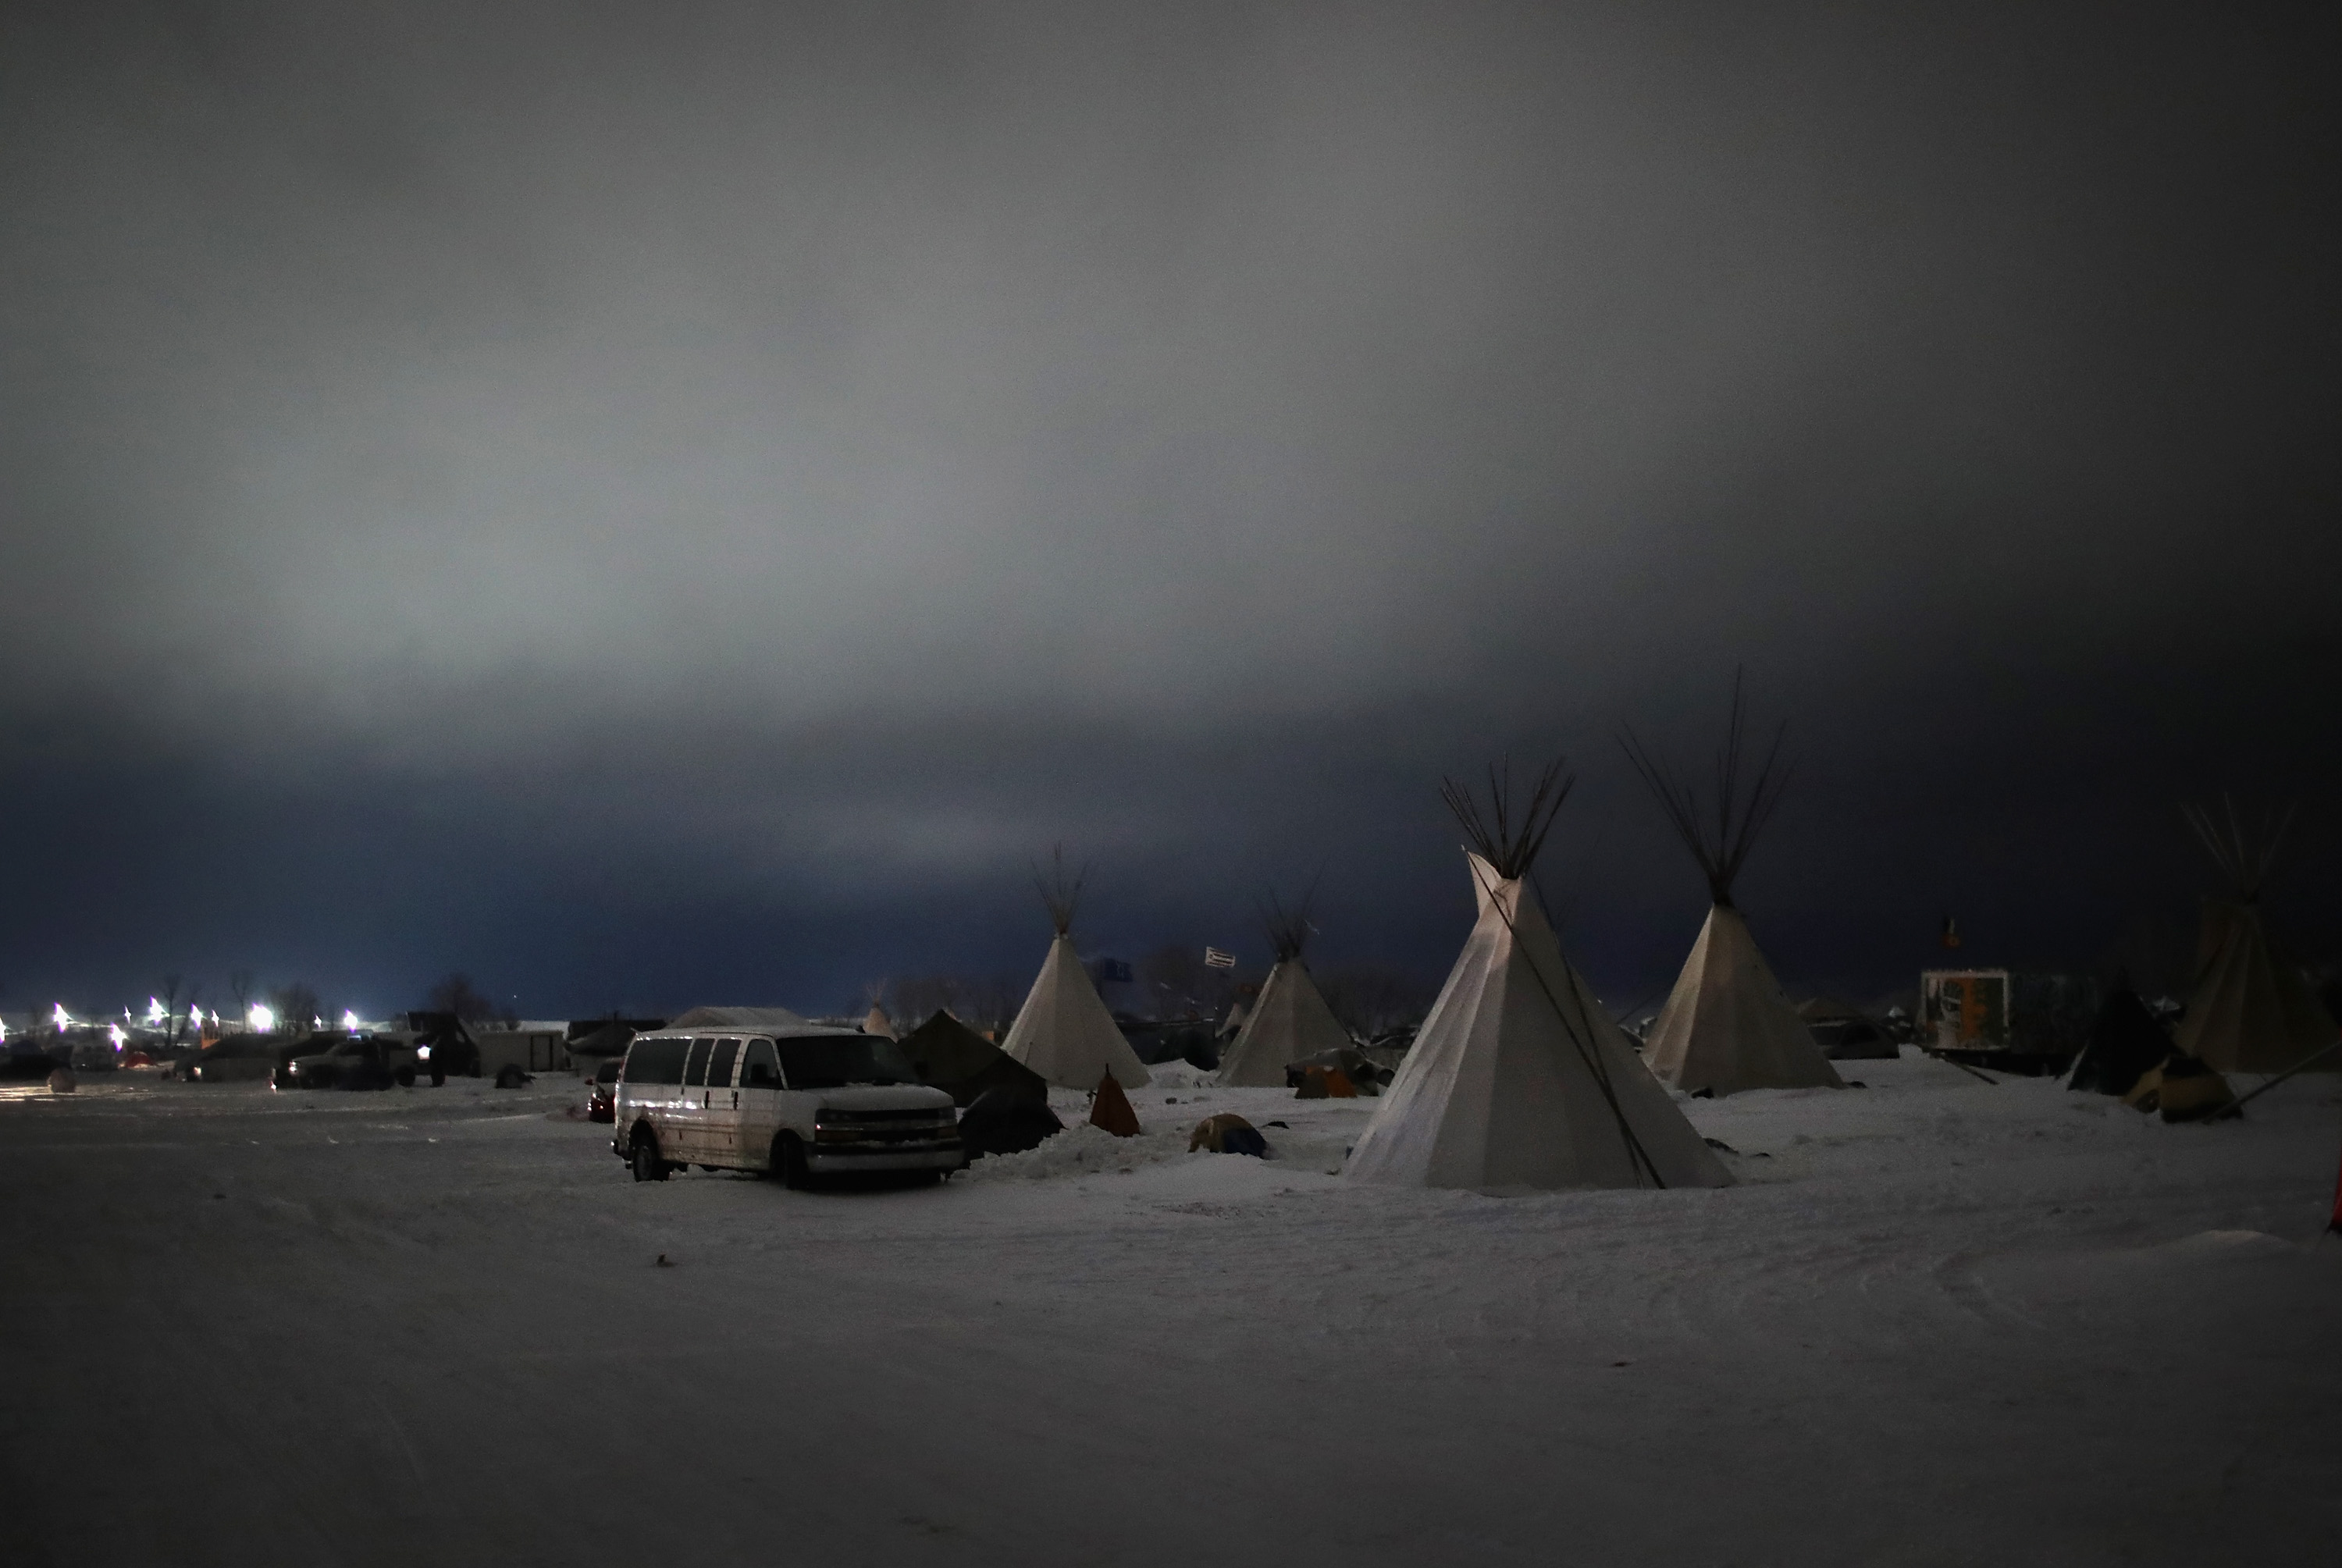 As police crack down on Standing Rock protesters, maybe read some books by indigenous authors